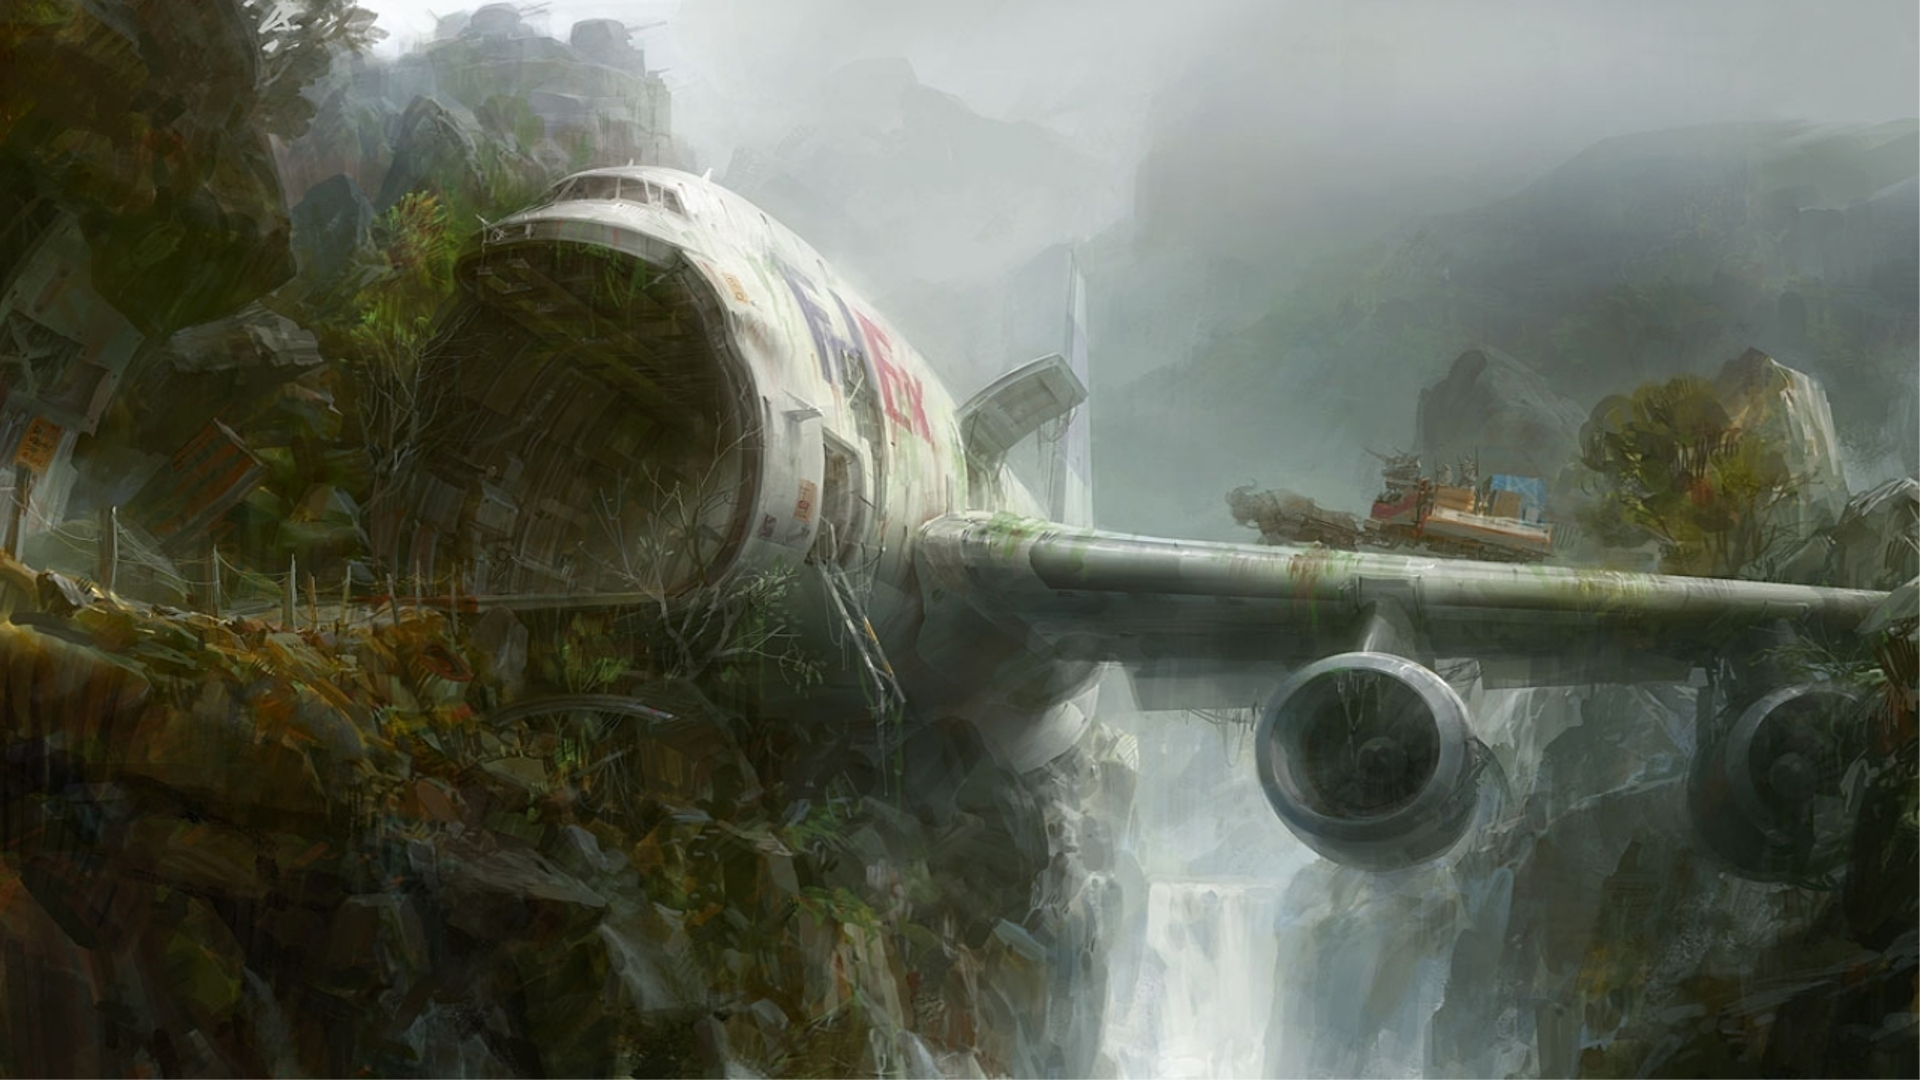 Artistic - Artistic  Painting Fed Ex Airplane Crash Forest Waterfall Aircraft Wallpaper